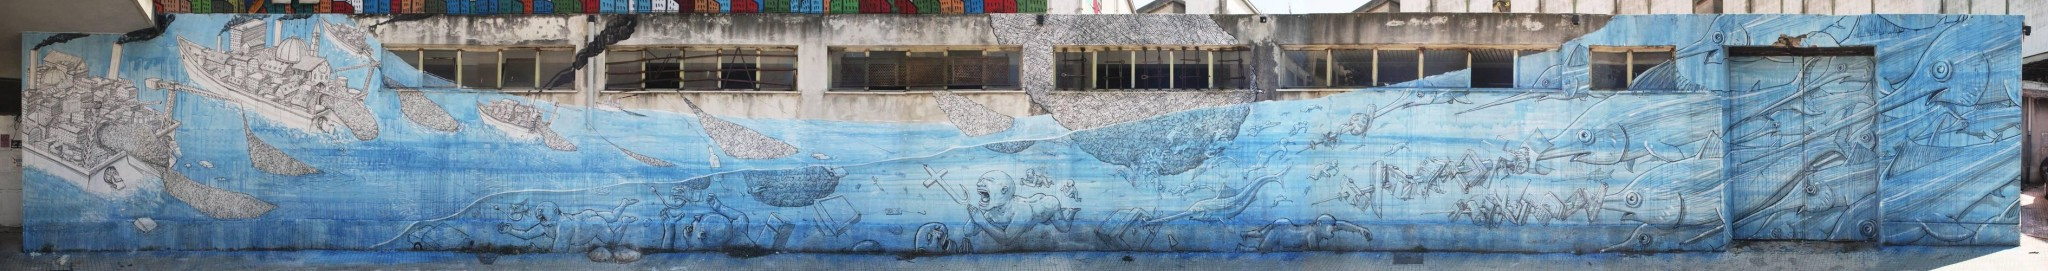 Artwork By Blu in Messina (Characters, Nature, Long wall, Street Art)